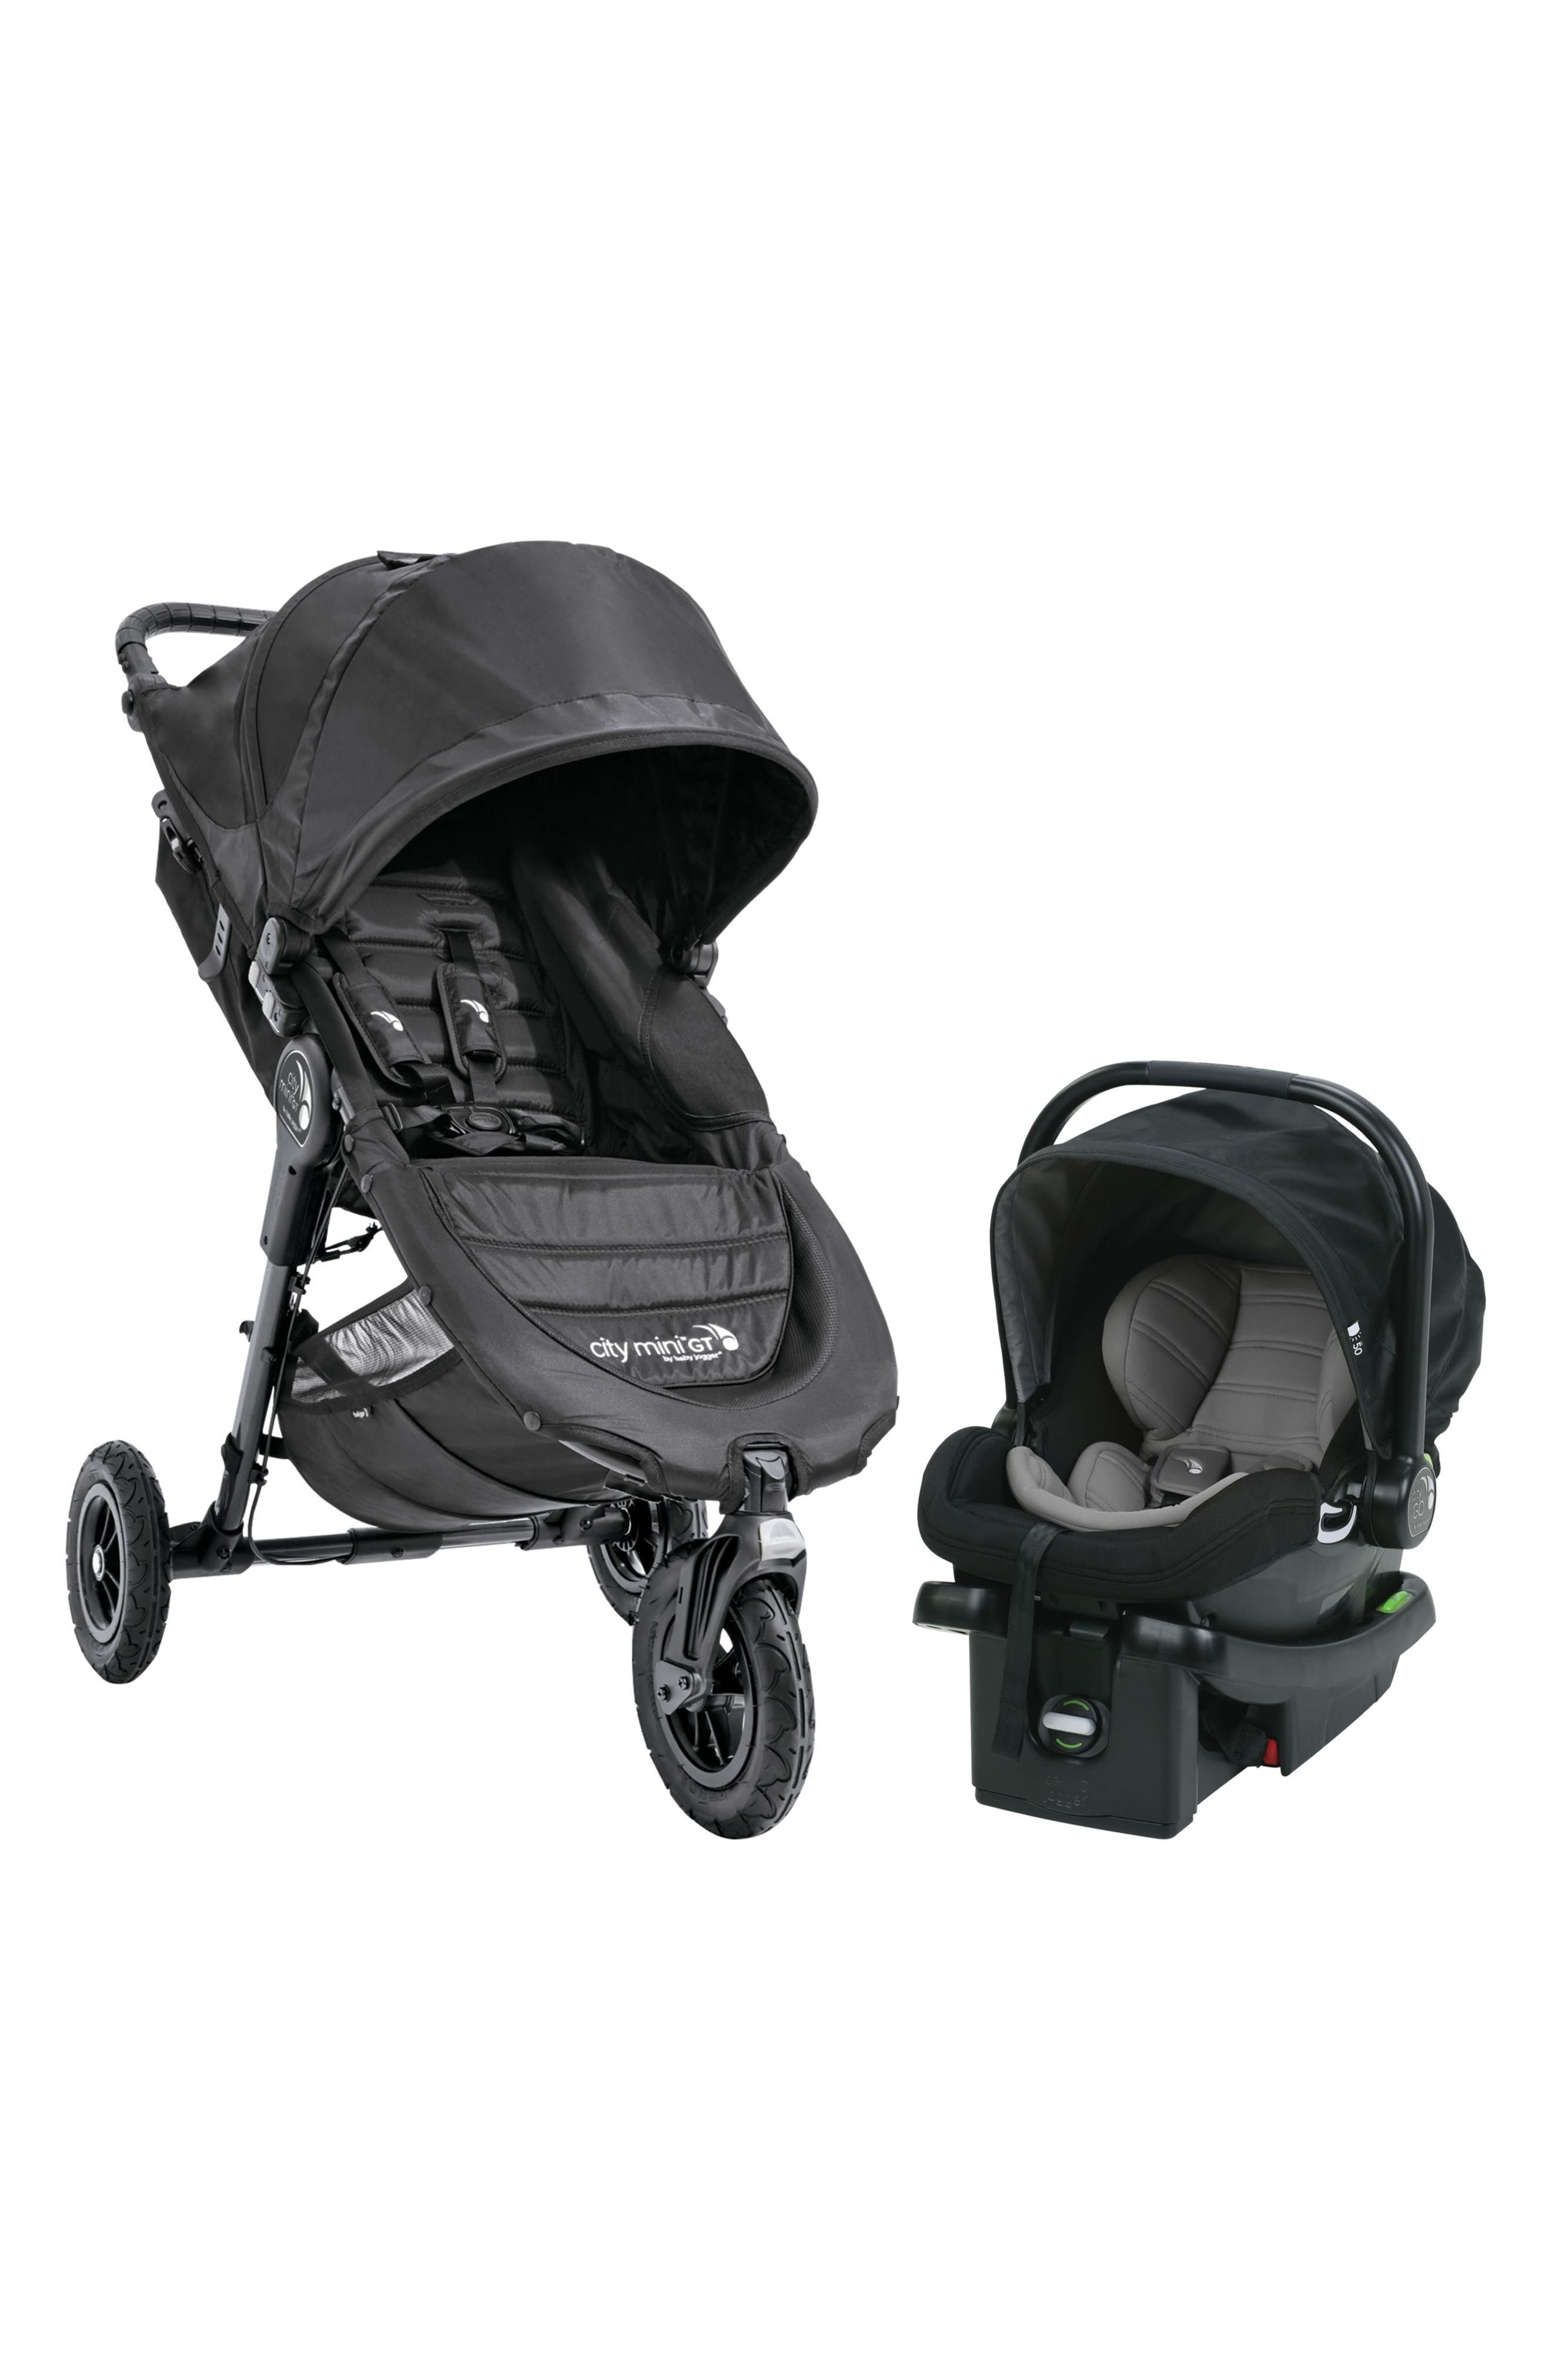 City Mini Single Stroller & City Go Infant Car Seat Travel System,                             Main thumbnail 1, color,                             BLACK